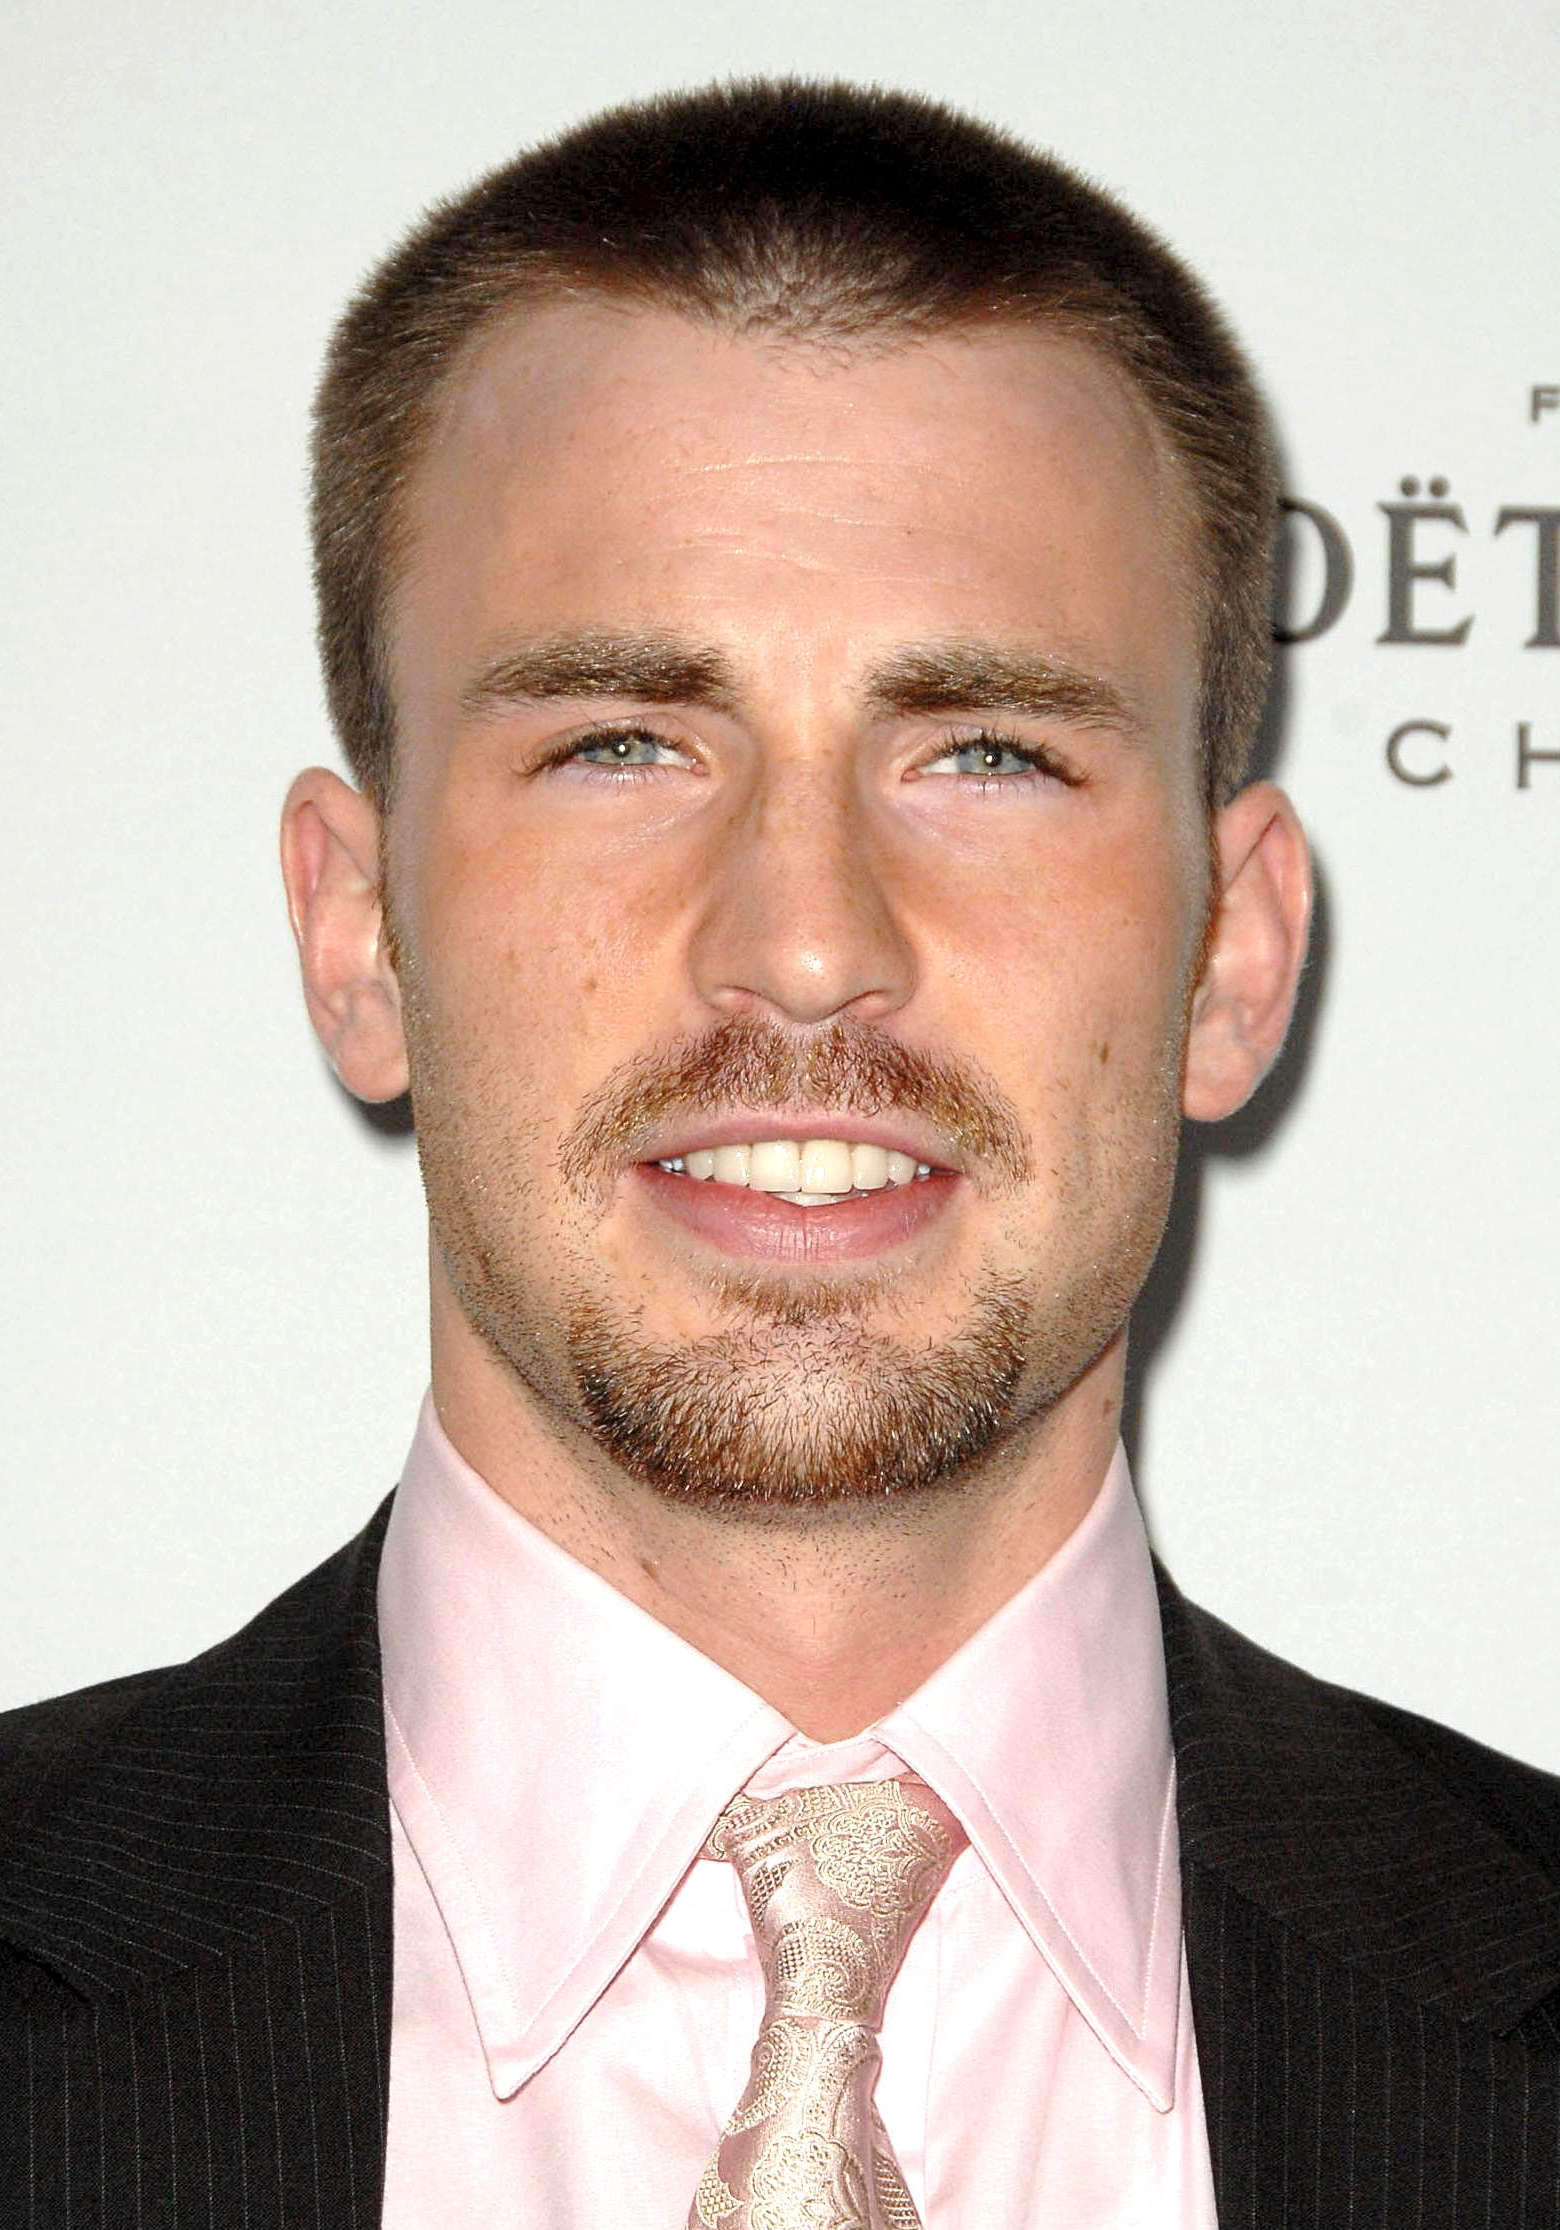 Chris Evans Butch Cut